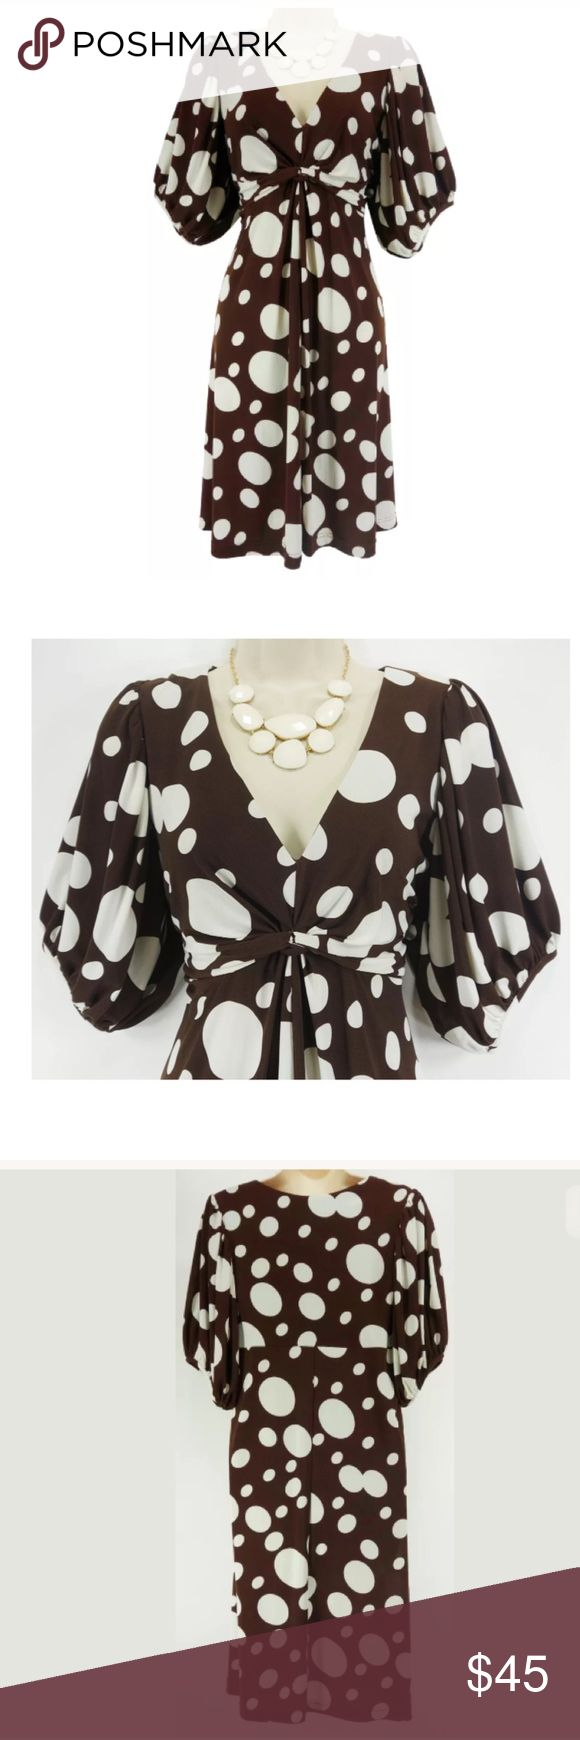 """14 Large XL CHOCOLATE/WHITE POLKA DOT DRESS Spring This sexy, sweet polka dot dress is perfect for a spring/summer occasion!   Size: 14 Slip on/off V-neckline Flattering ruched empire waist  Polka Dot print in chocolate & white Balloon elbow sleeves Stretchy, comfortable fabric Measurements: Bust (armpit to armpit): 38"""" relaxed - stretches to 46"""" Waist: 36"""" relaxed - stretches to 45"""" Hips: 46"""" relaxed Length: 38"""" (top of shoulder to bottom hem)  Condition:  PRISTINE CONDITION! Fabric…"""